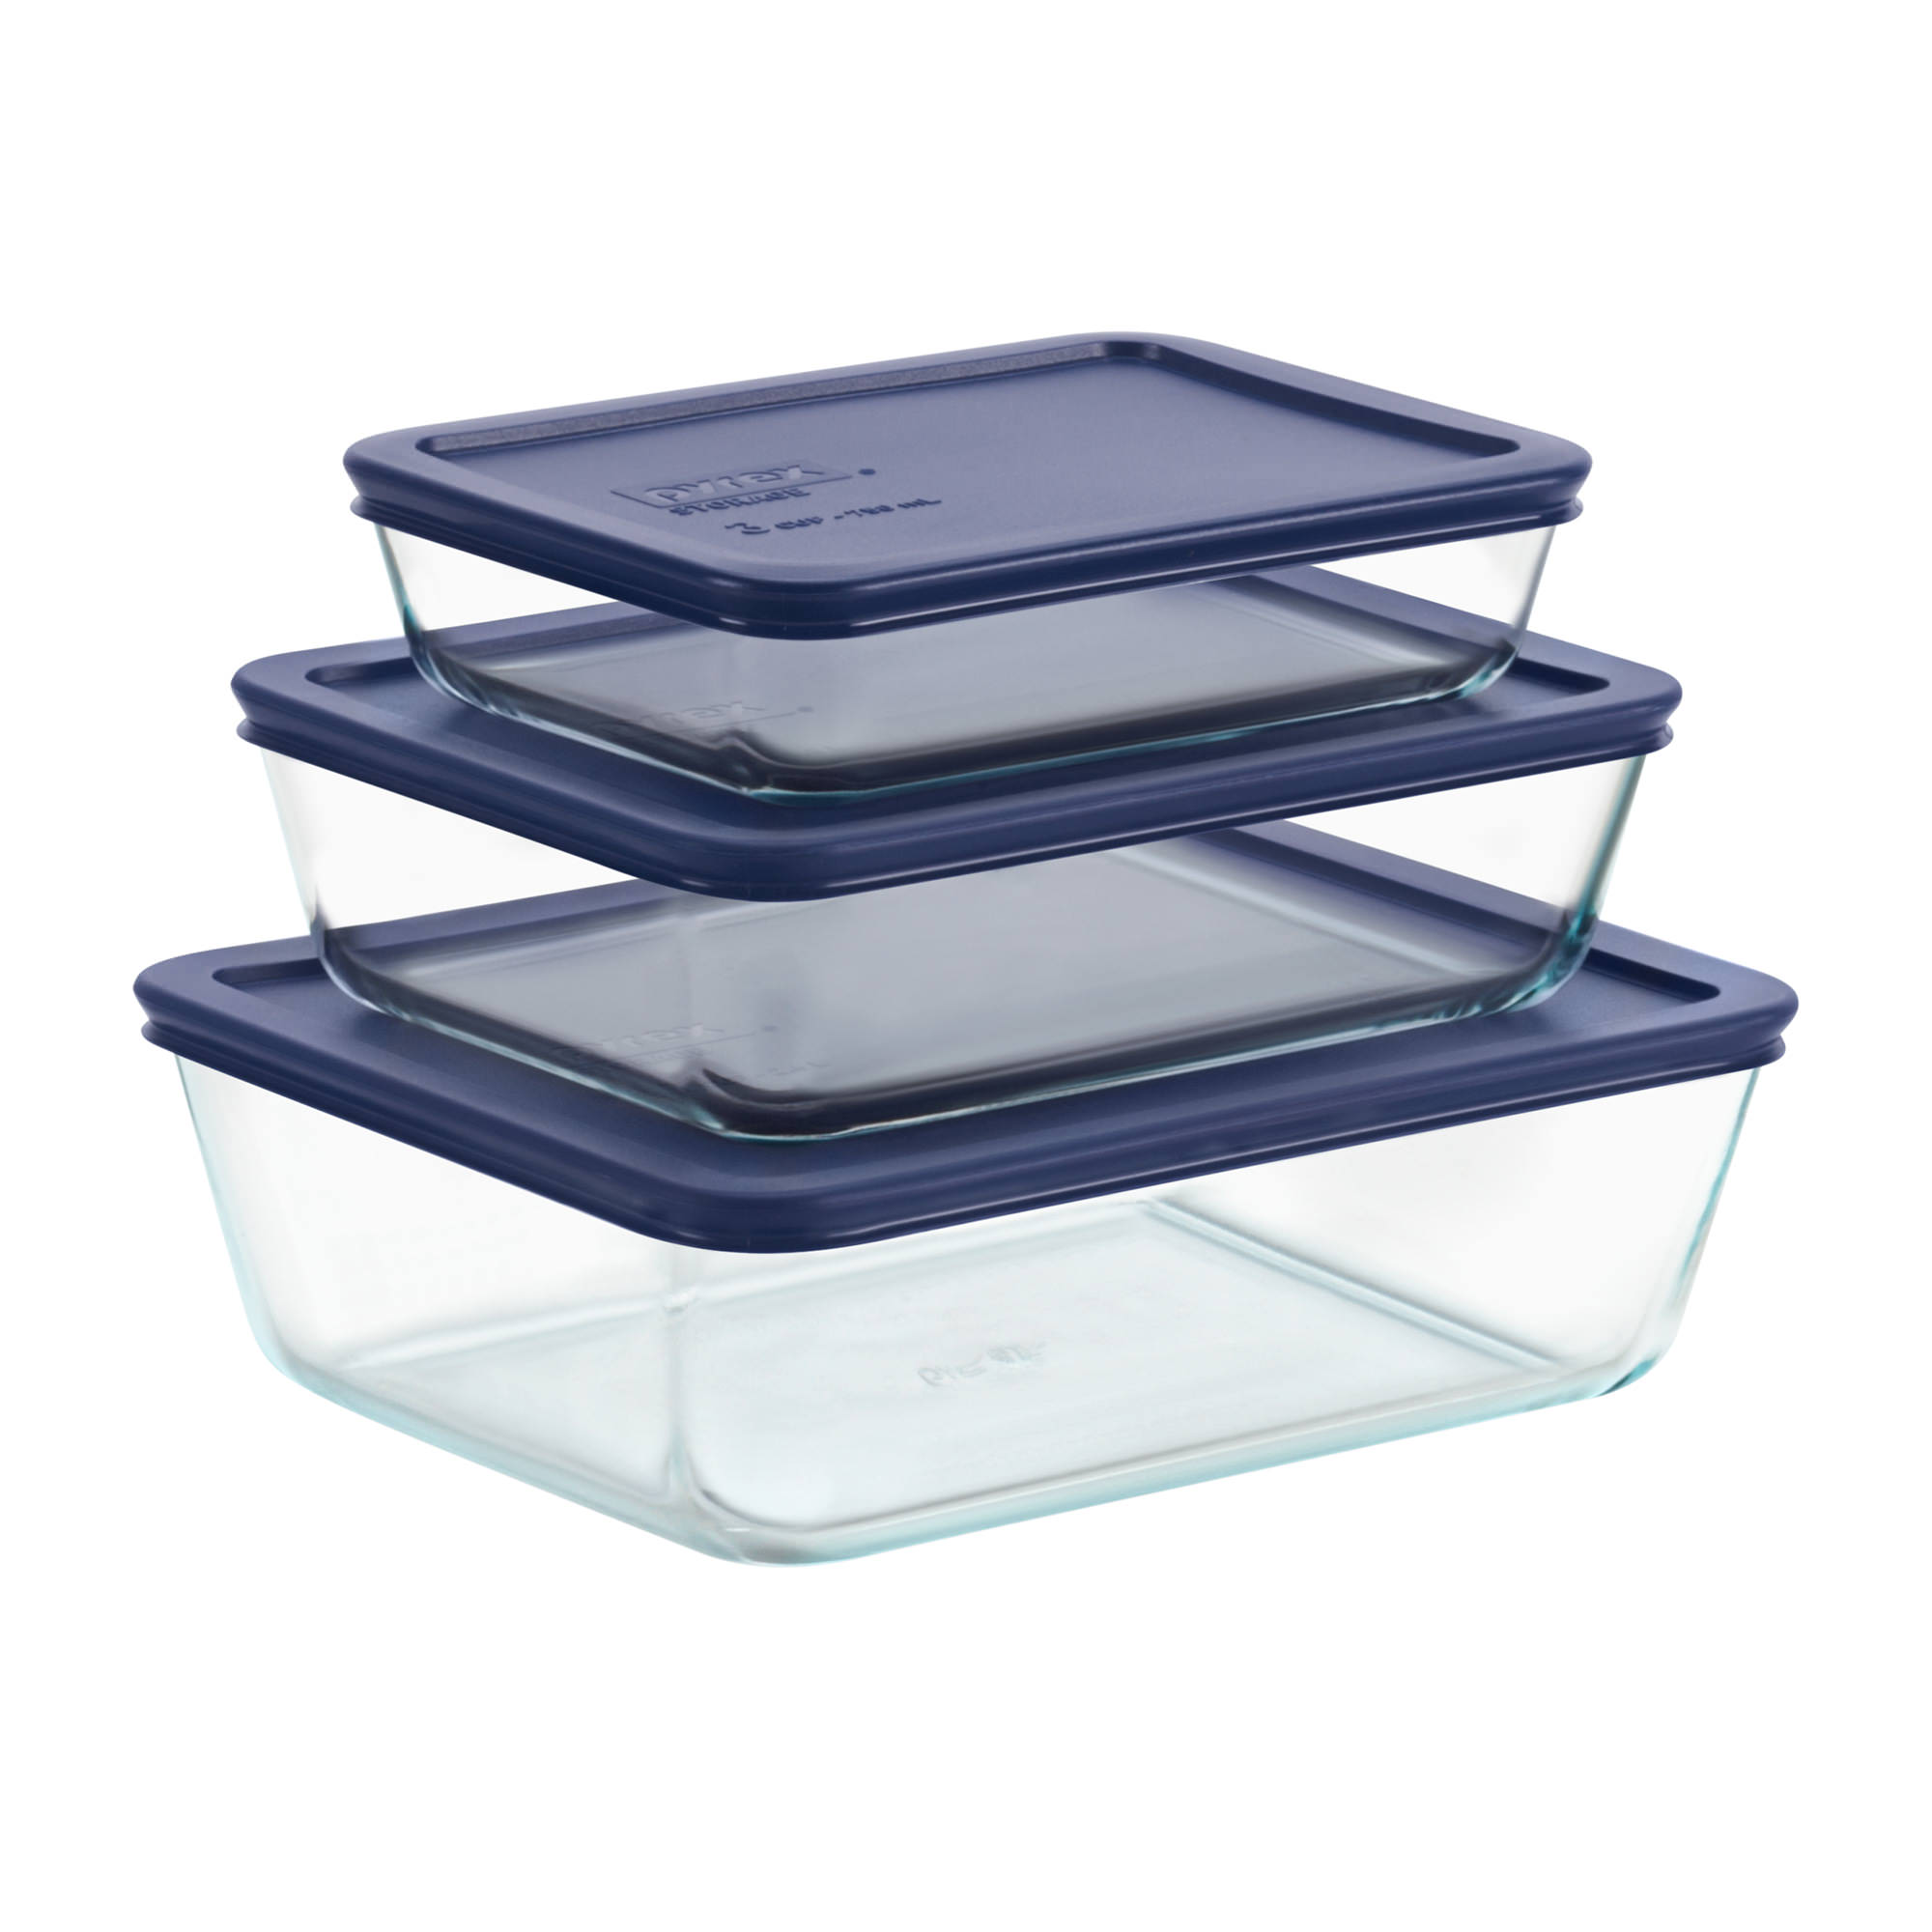 Pyrex Simply Store 6pc Rectangular Food Container Set w/ Lid